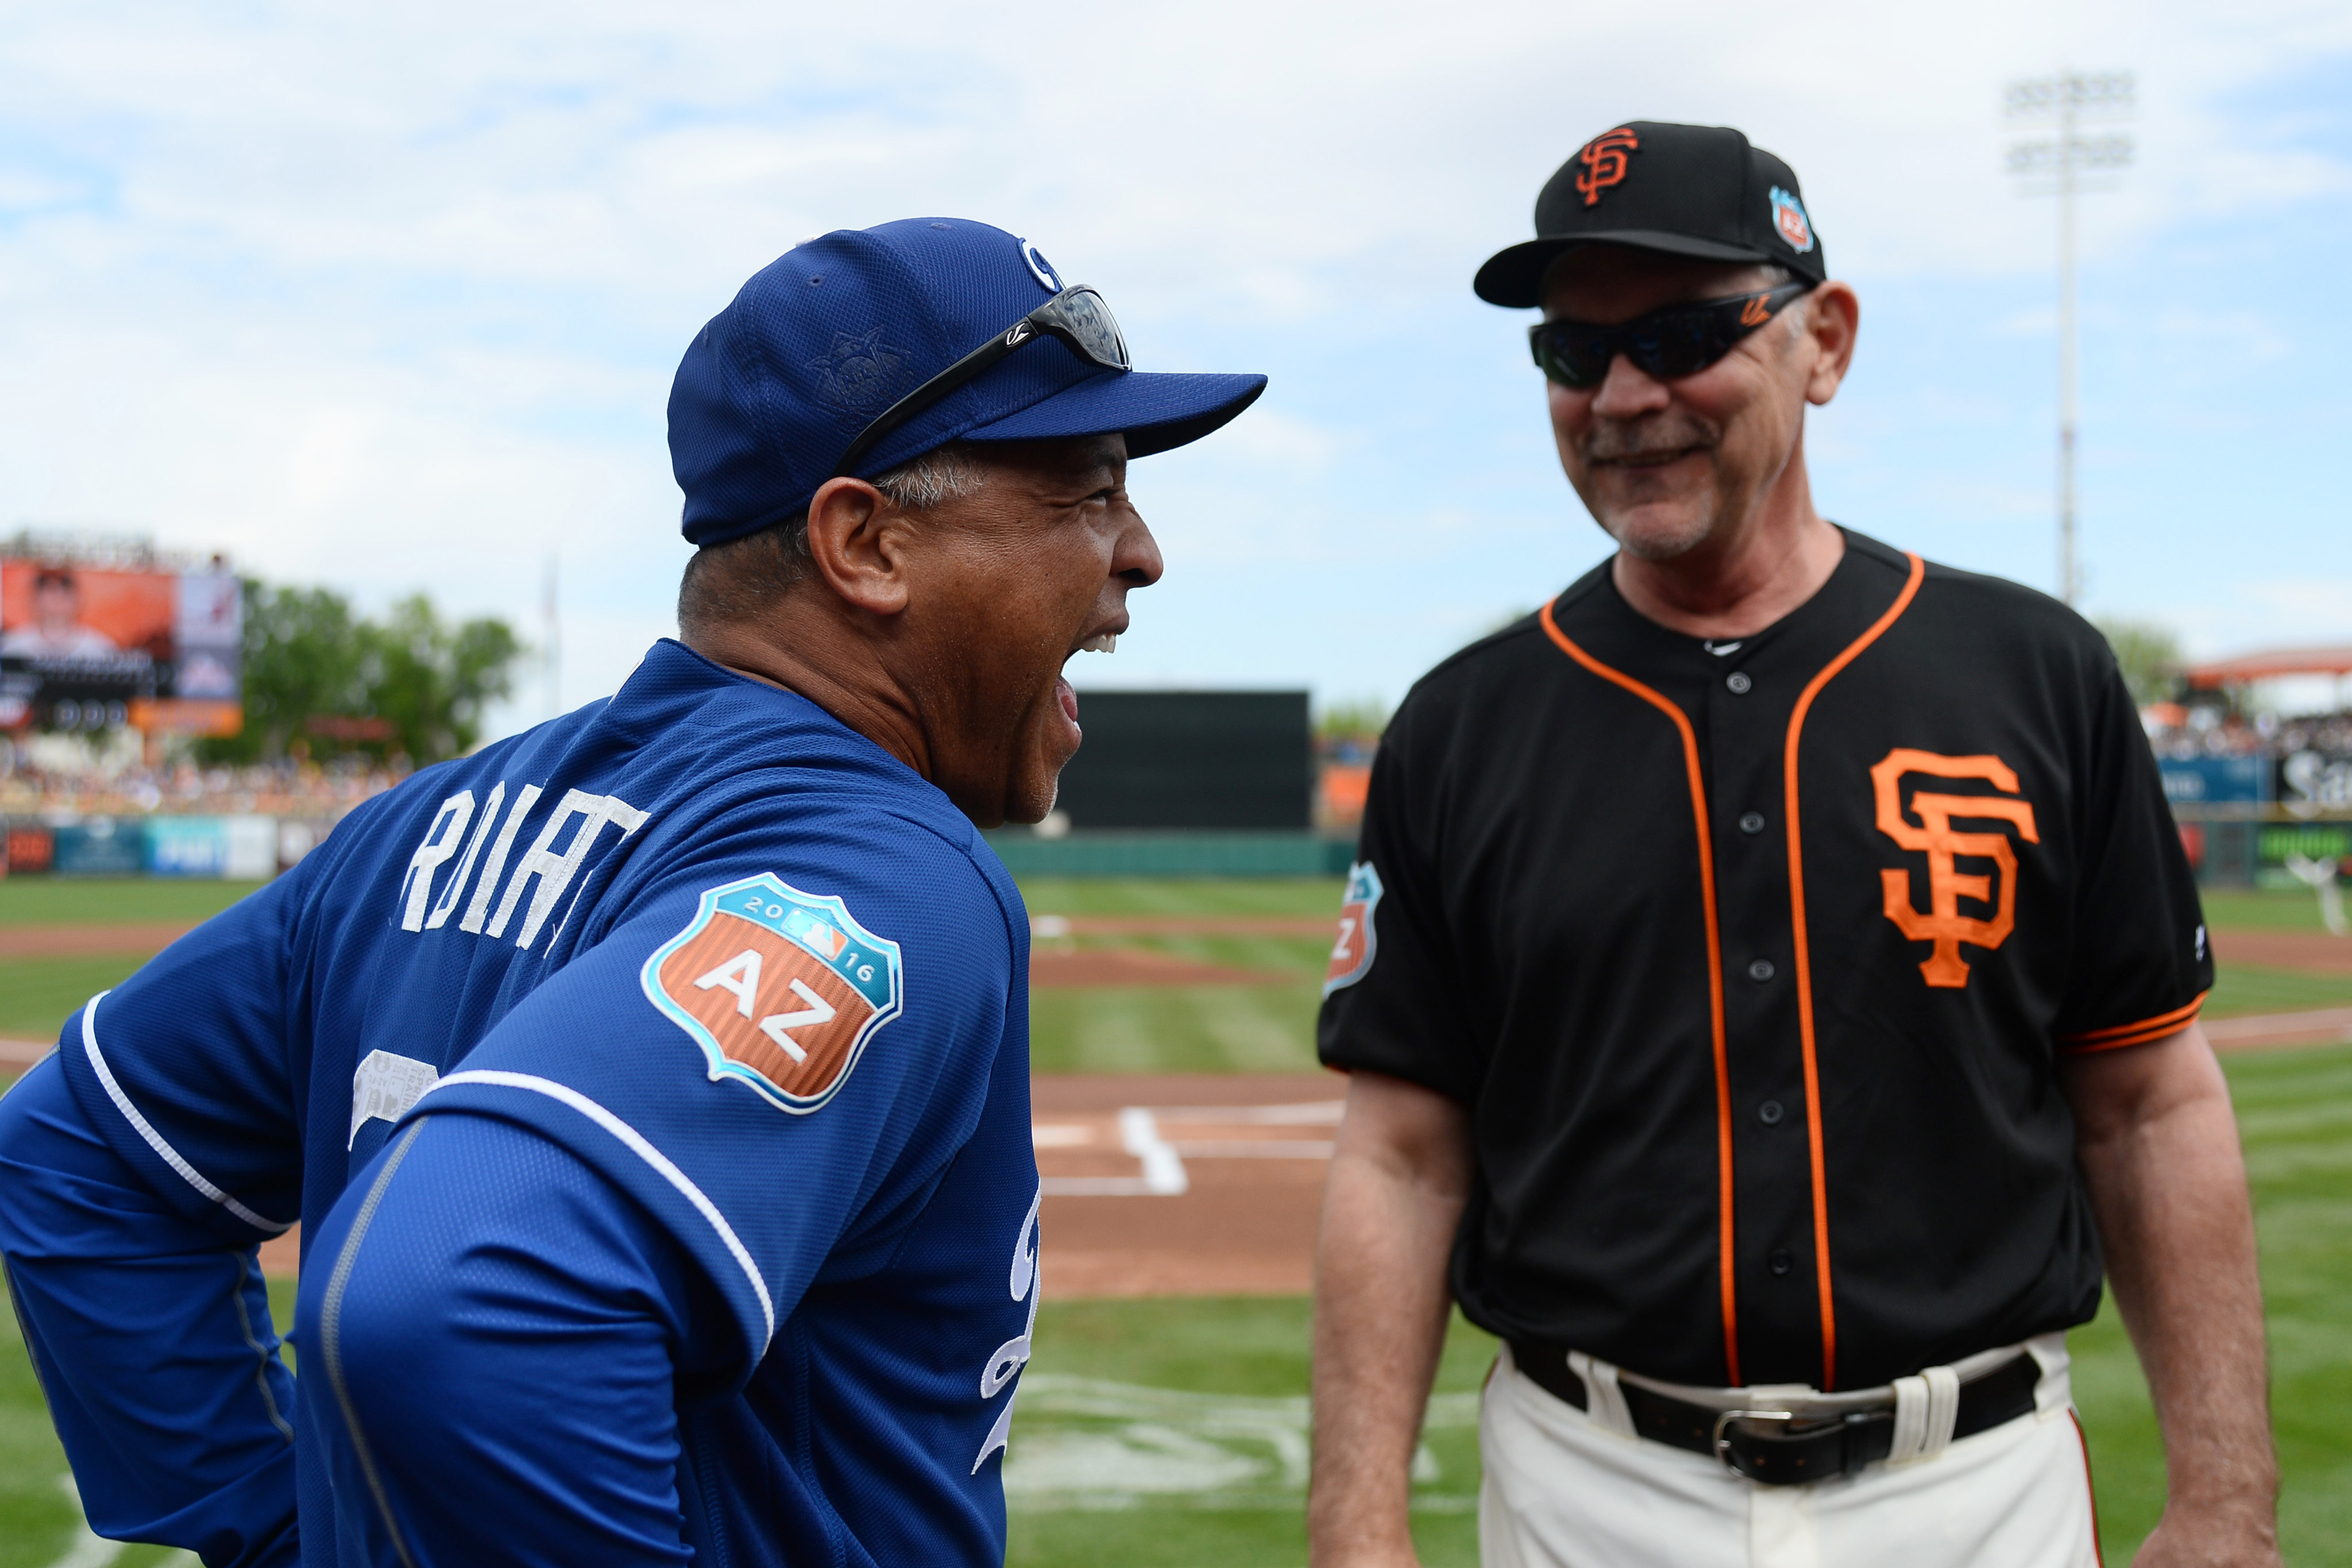 9162625-mlb-spring-training-los-angeles-dodgers-at-san-francisco-giants